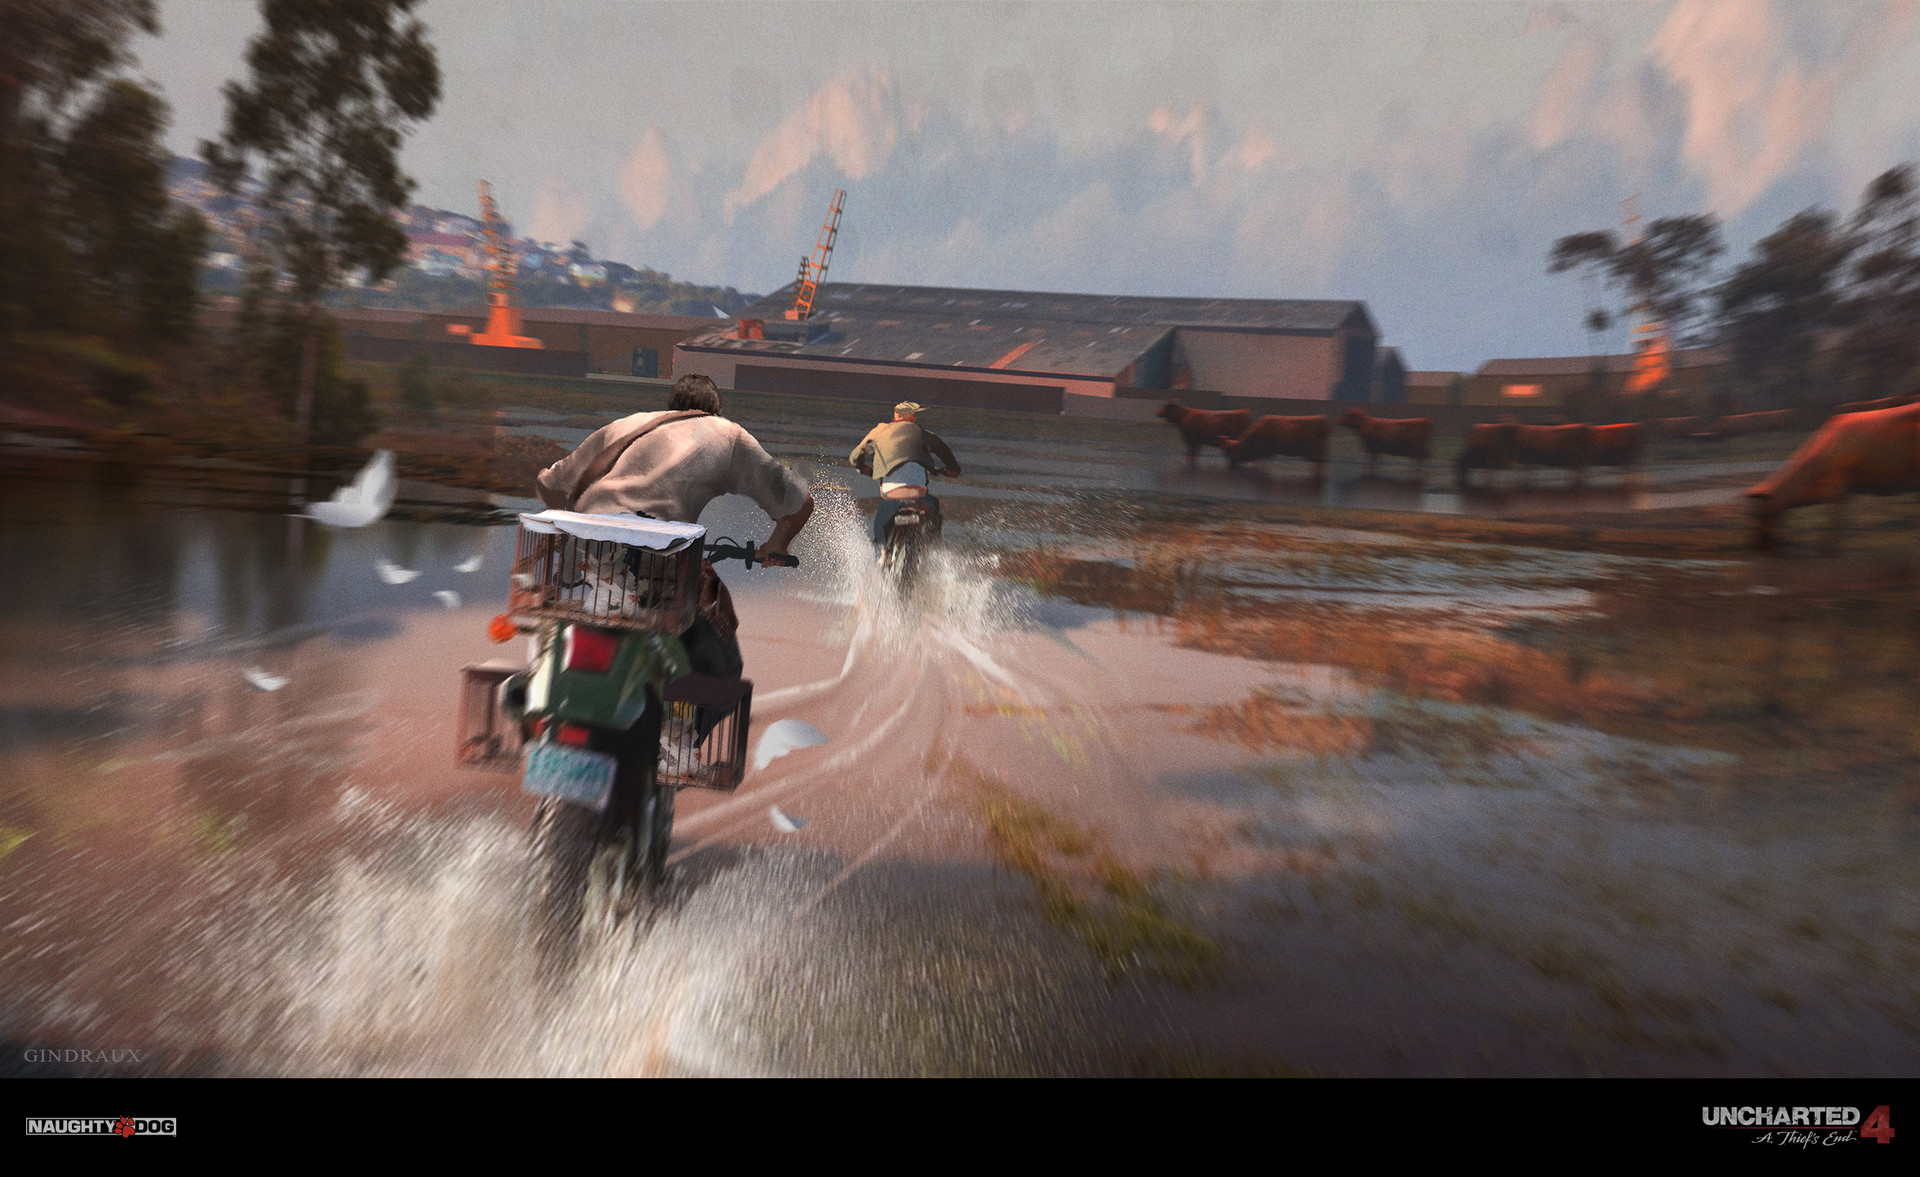 Nick Gindraux Digital Painting Concept art Uncharted 4 Motocycle Chase